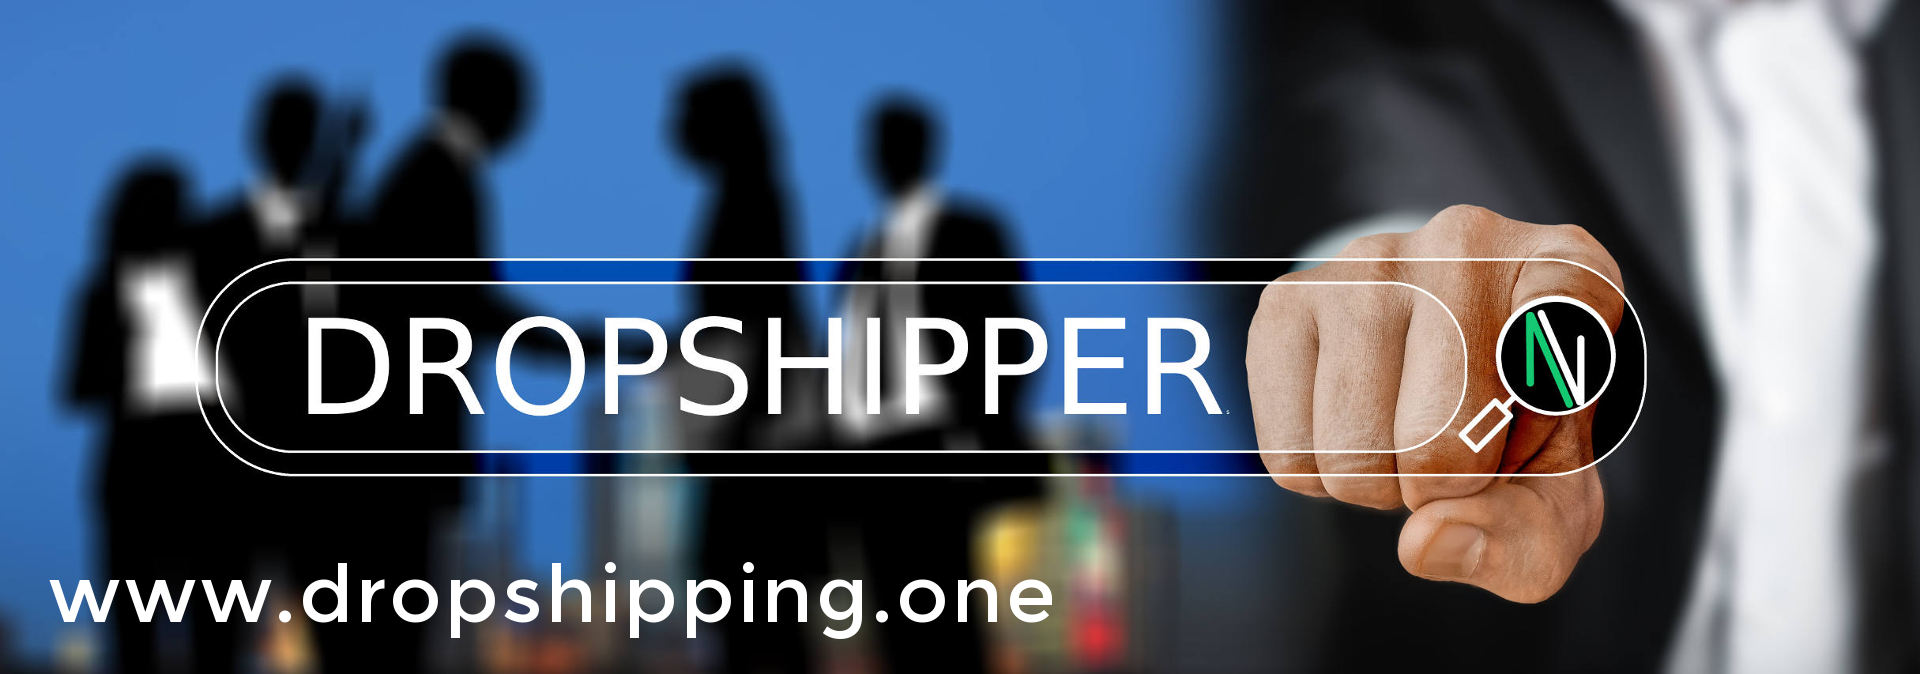 dropshipping-search-101vetrine1